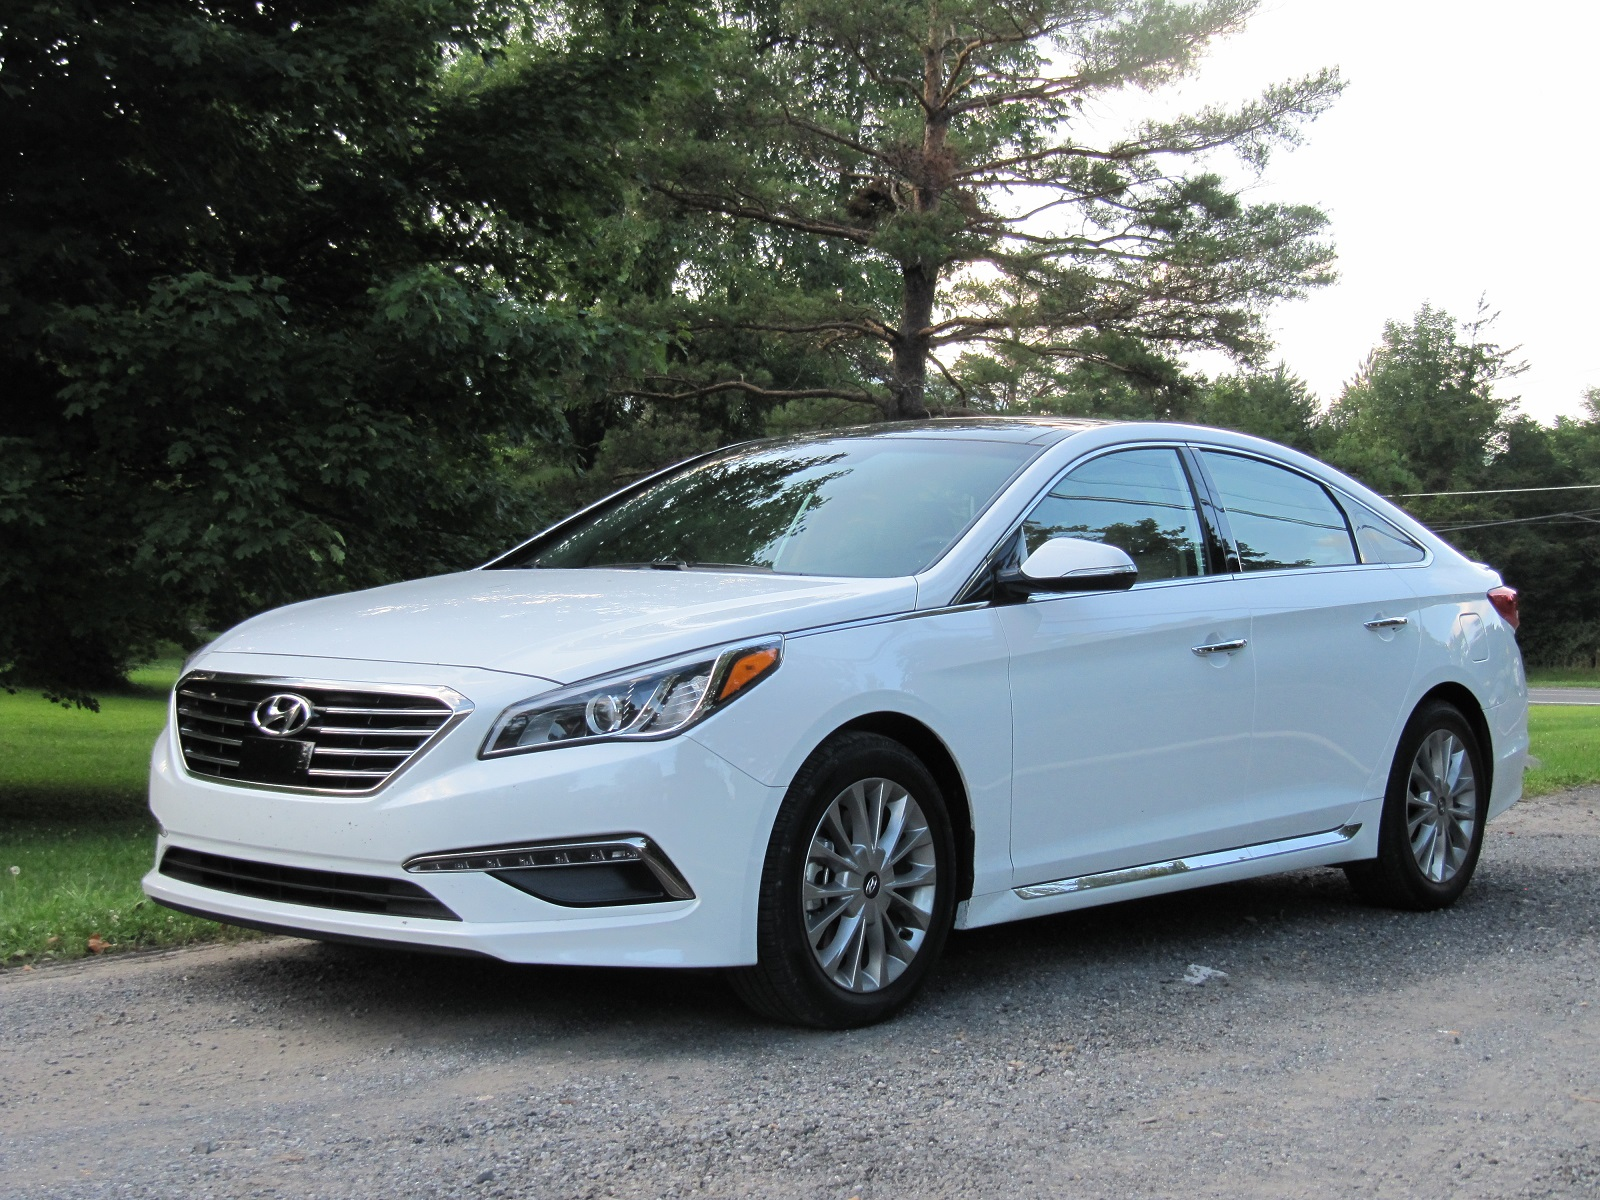 2015 Hyundai Sonata Gas Mileage Review Of New Mid Size